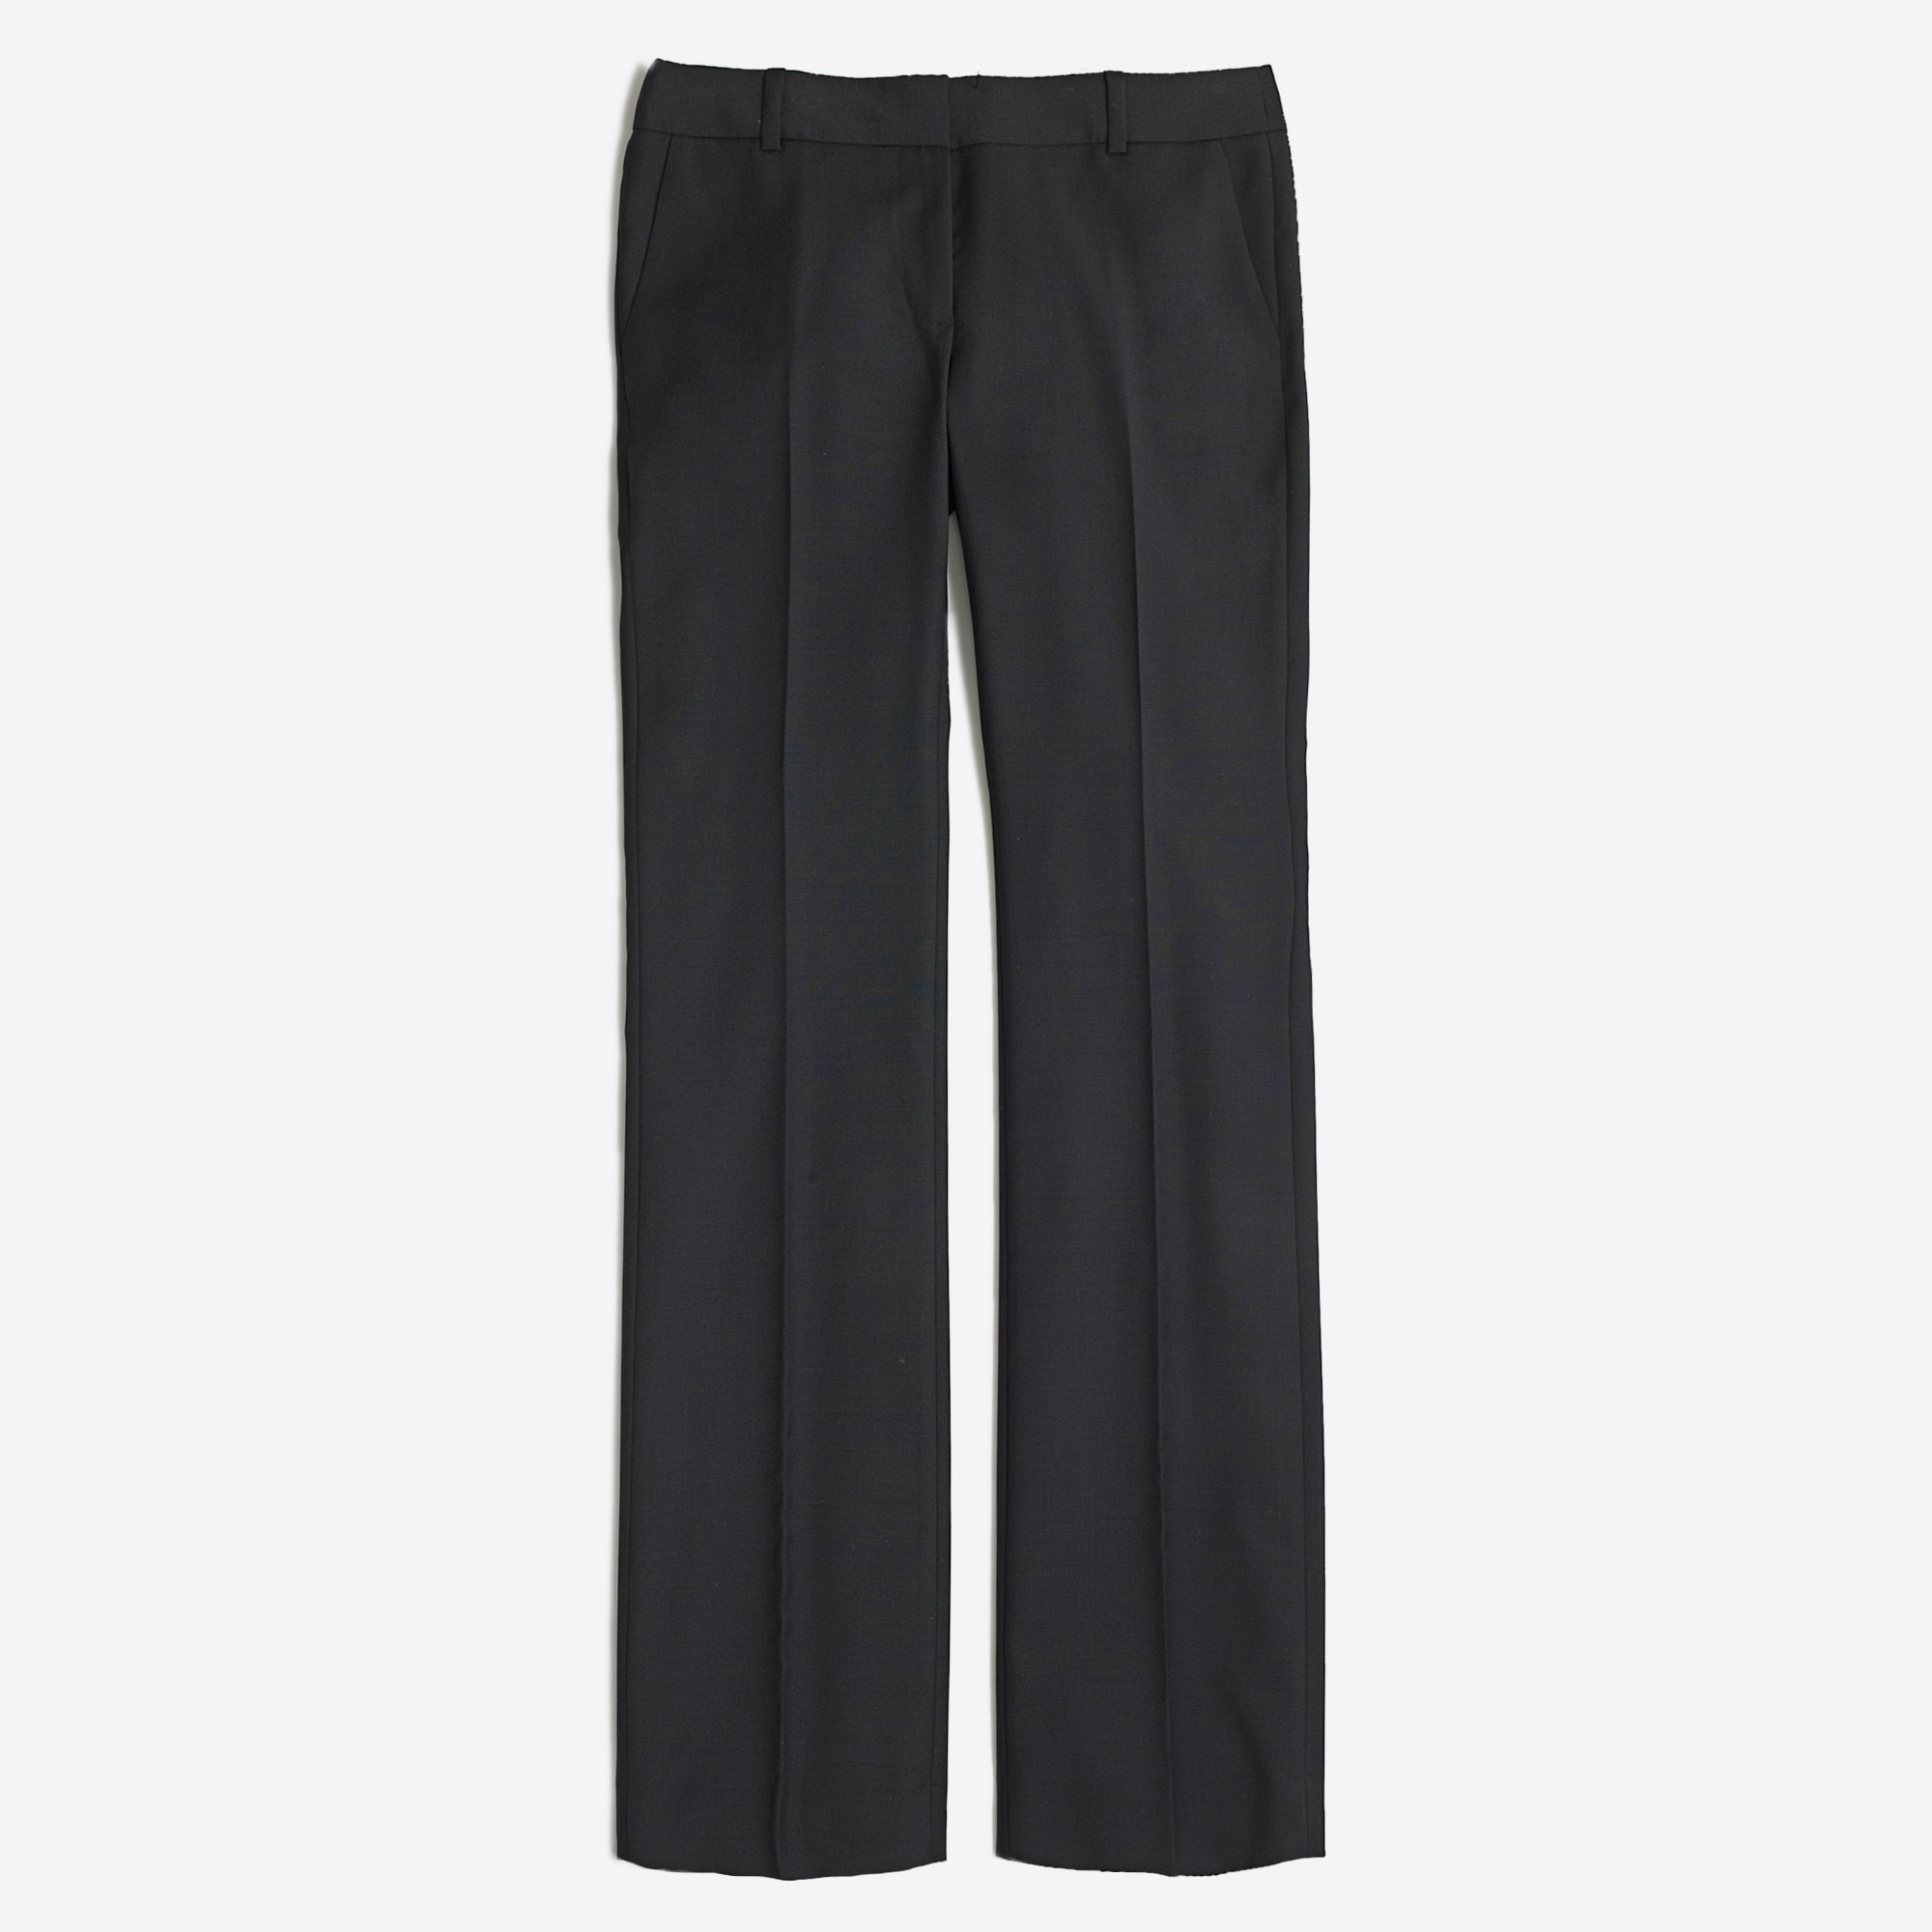 Image 1 for Suiting pant in lightweight wool